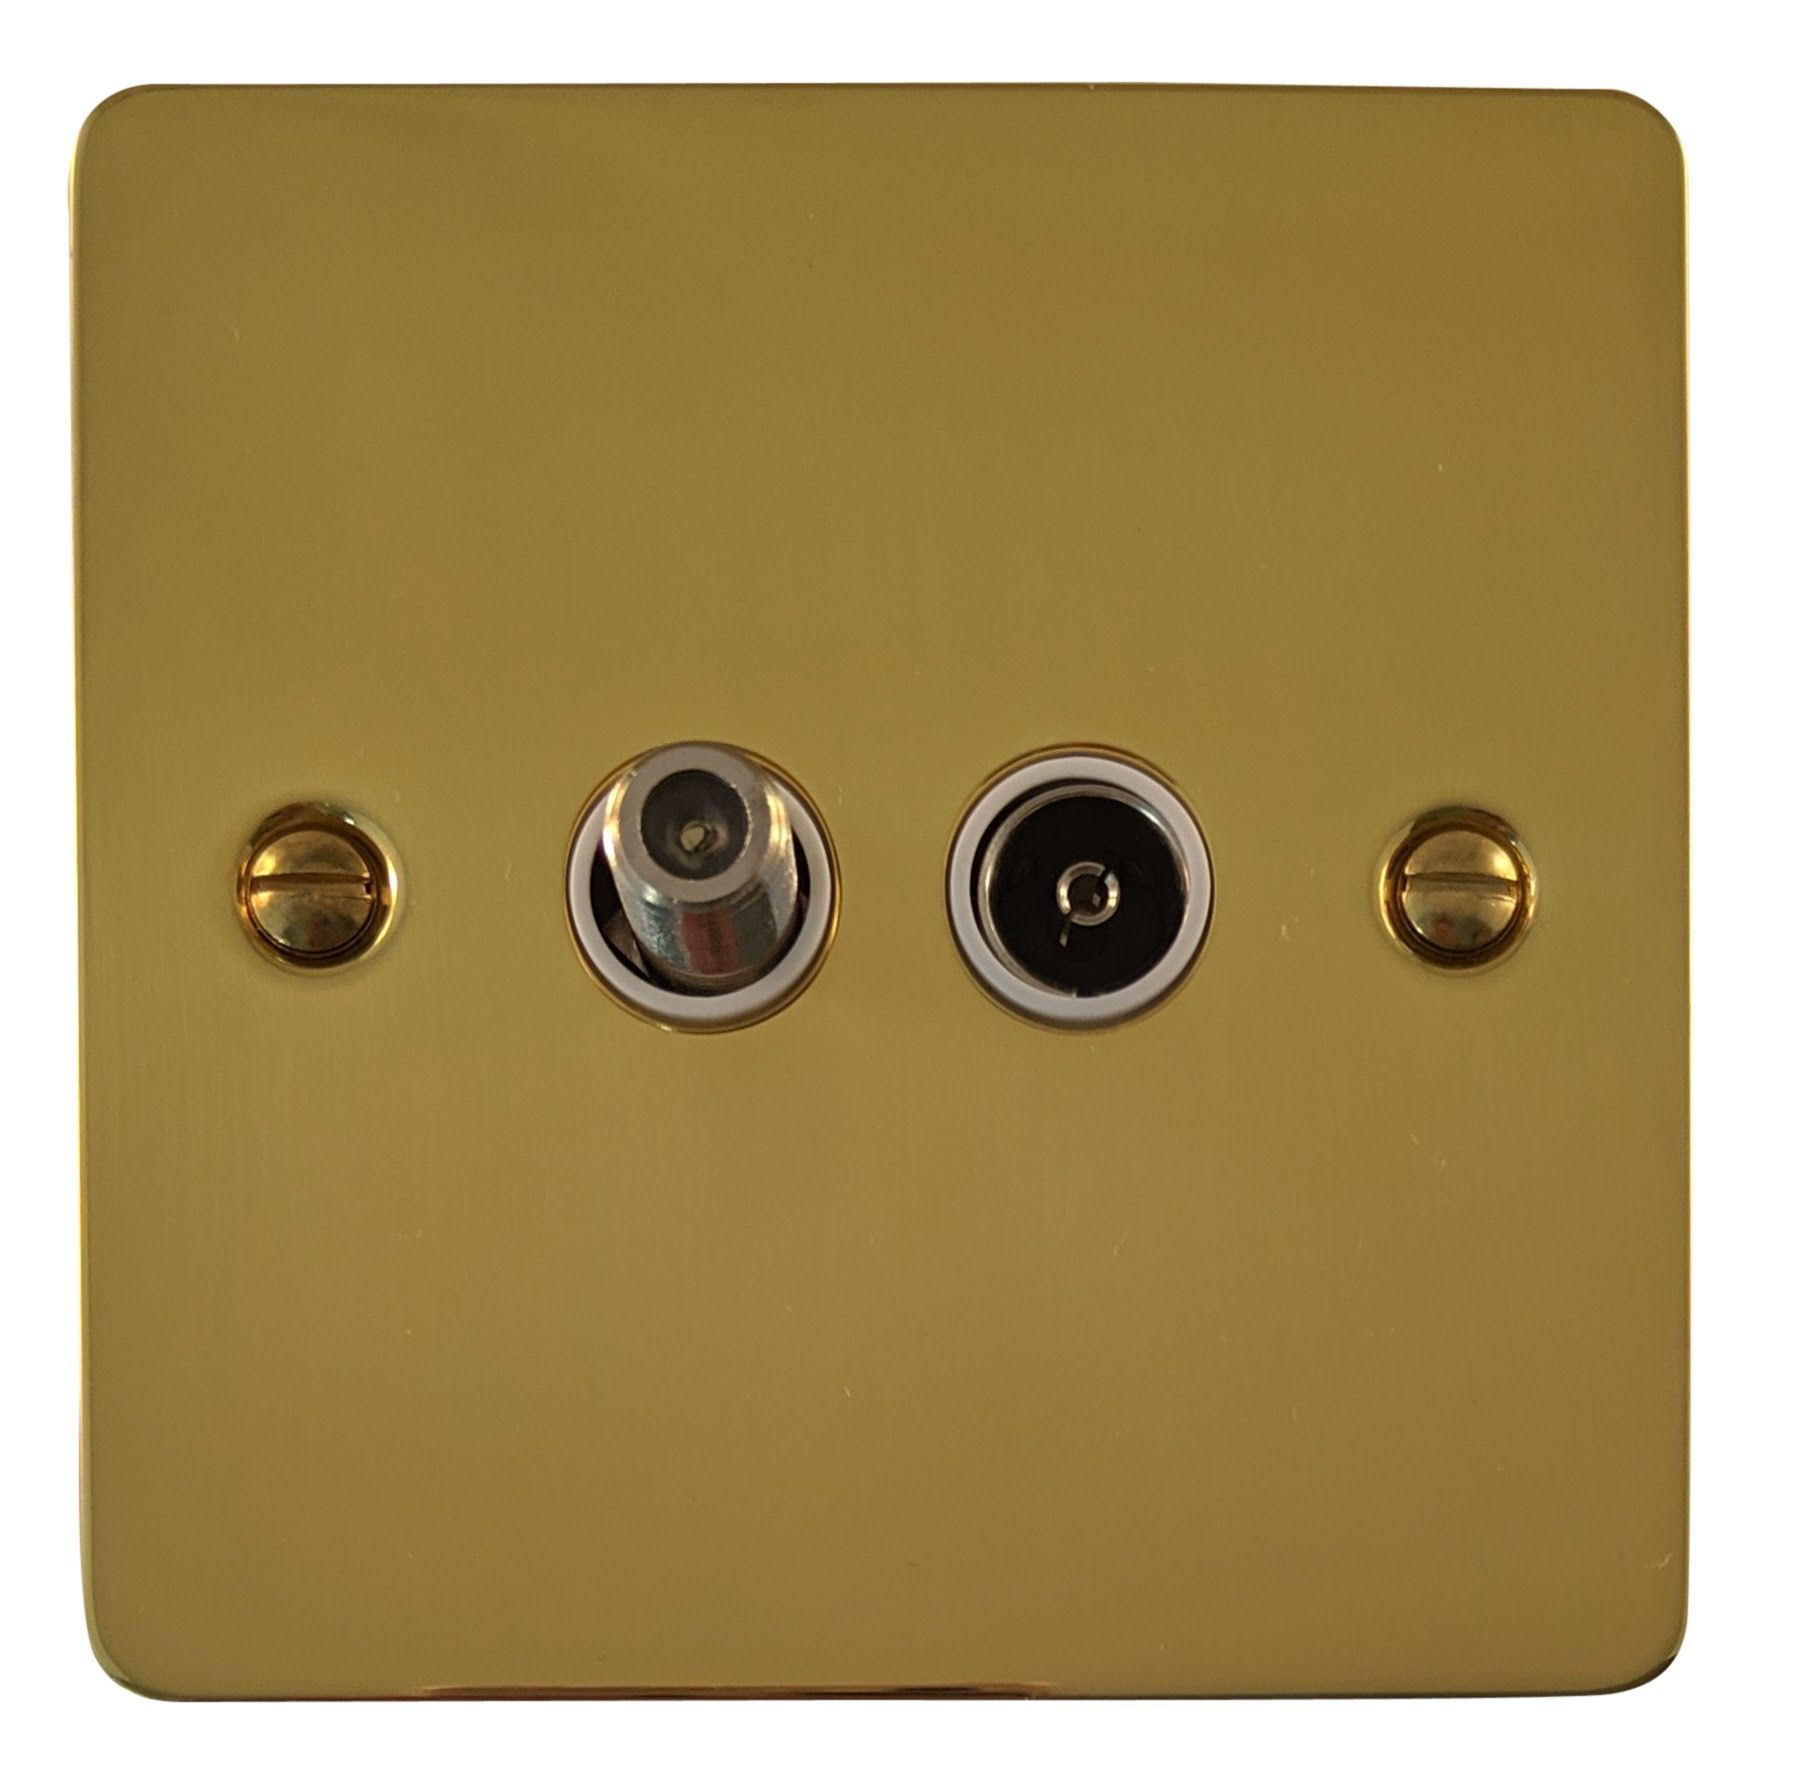 G&H FB38W Flat Plate Polished Brass 1 Gang TV Coax & Satellite Socket Point